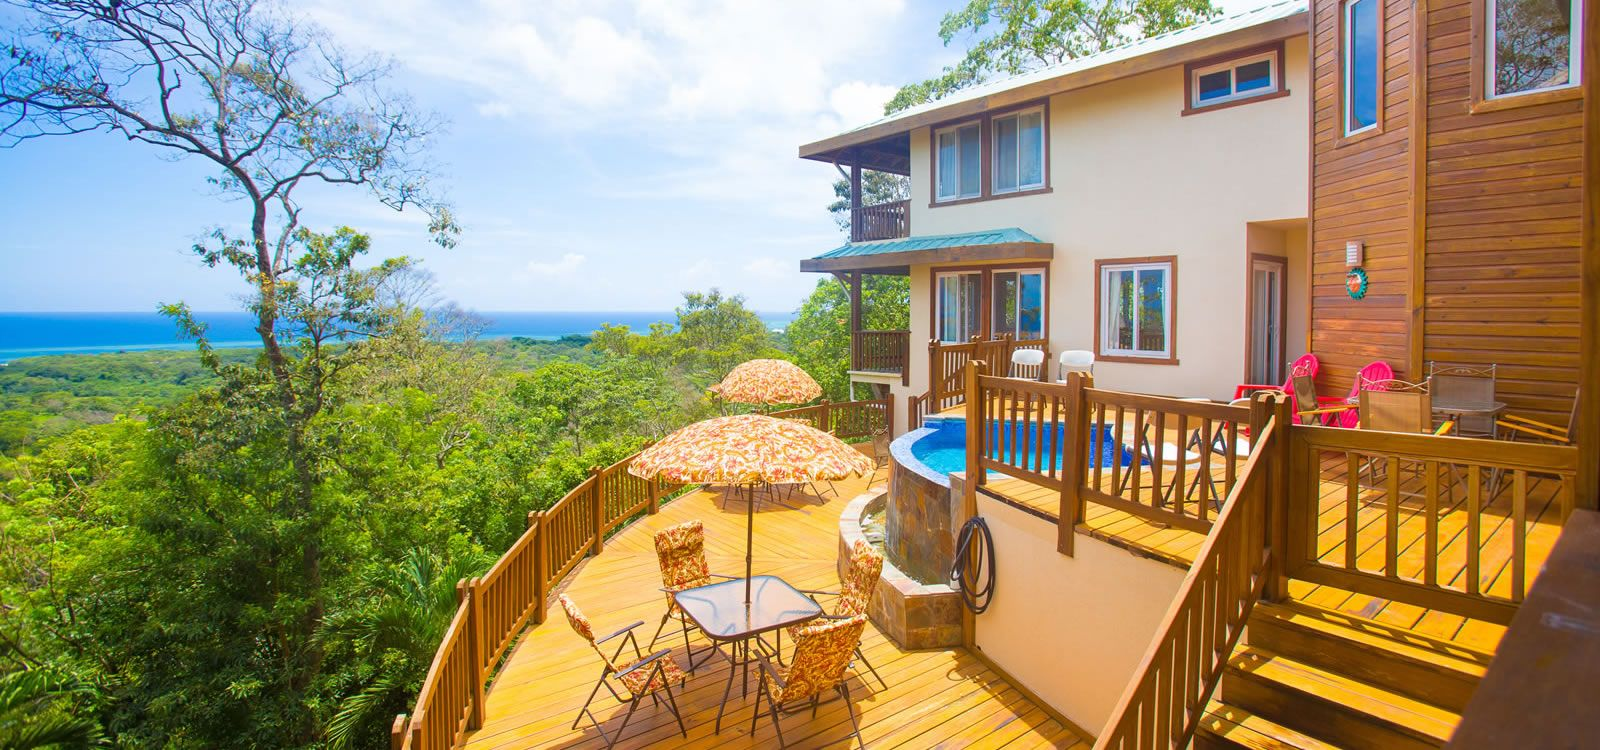 6 bedroom property for sale turtling bay roatan with